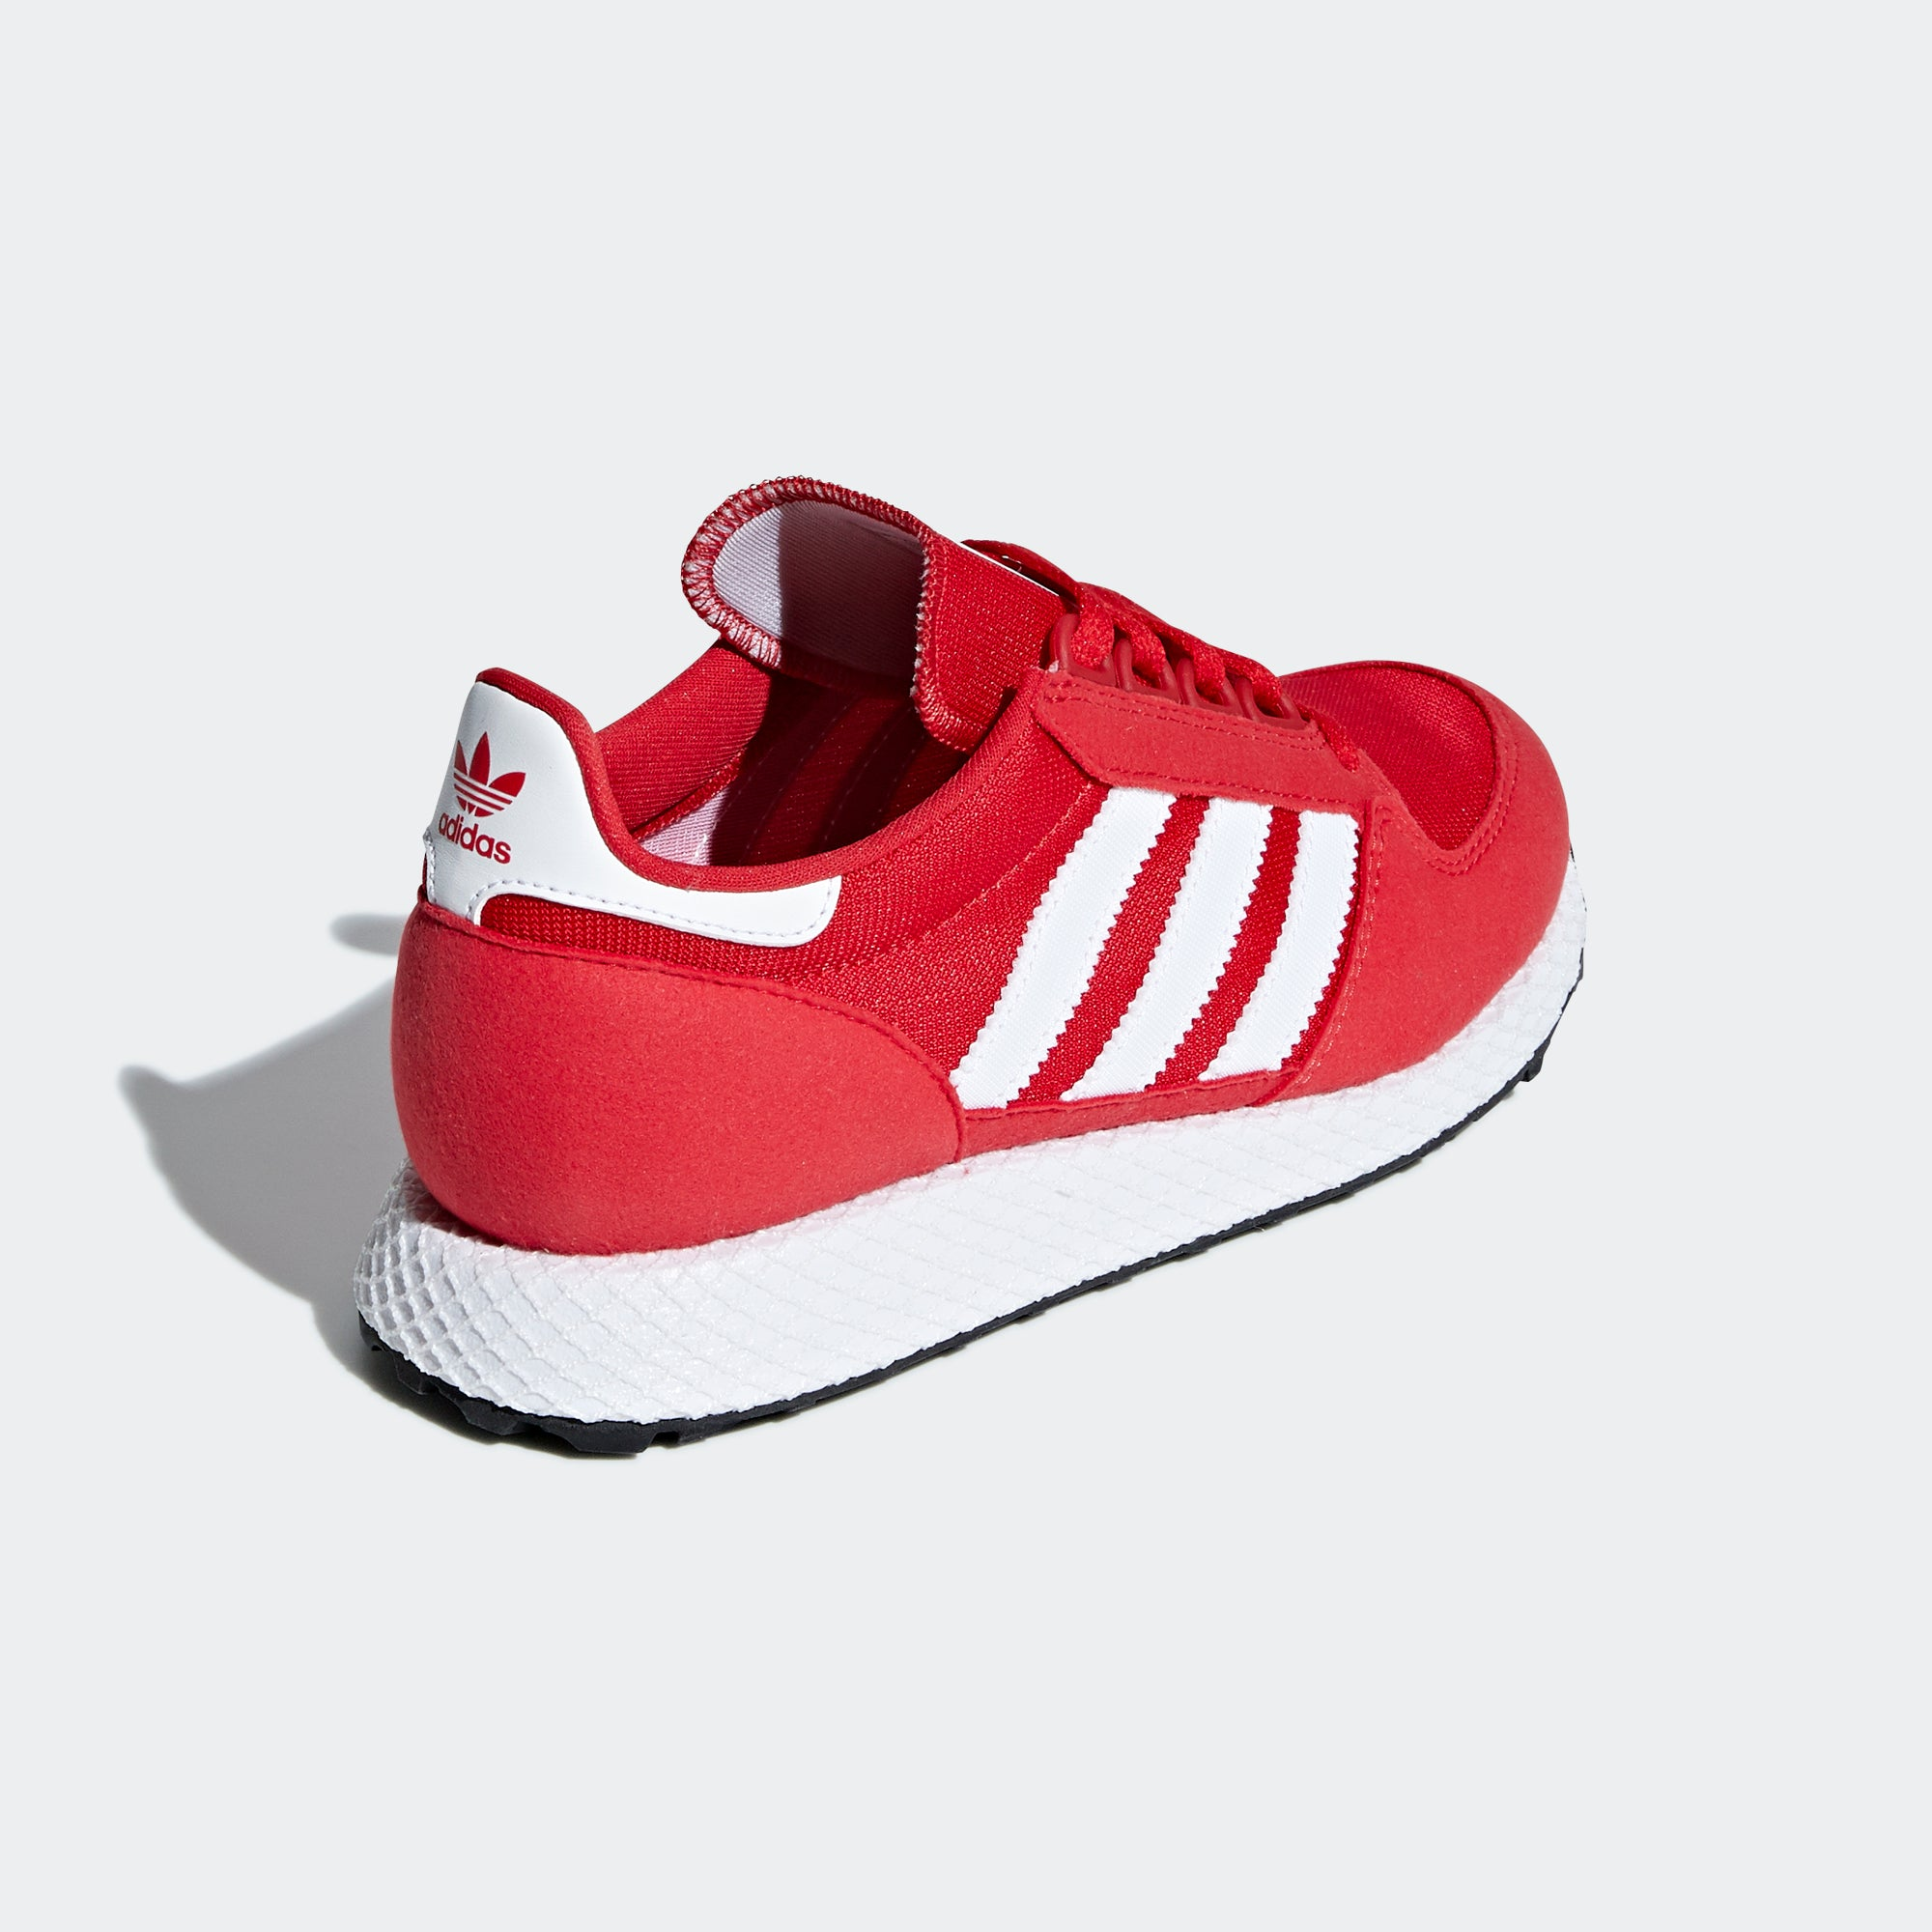 finest selection bb4f2 86dac Kid s adidas Originals Forest Grove Shoes Scarlet Red. 1